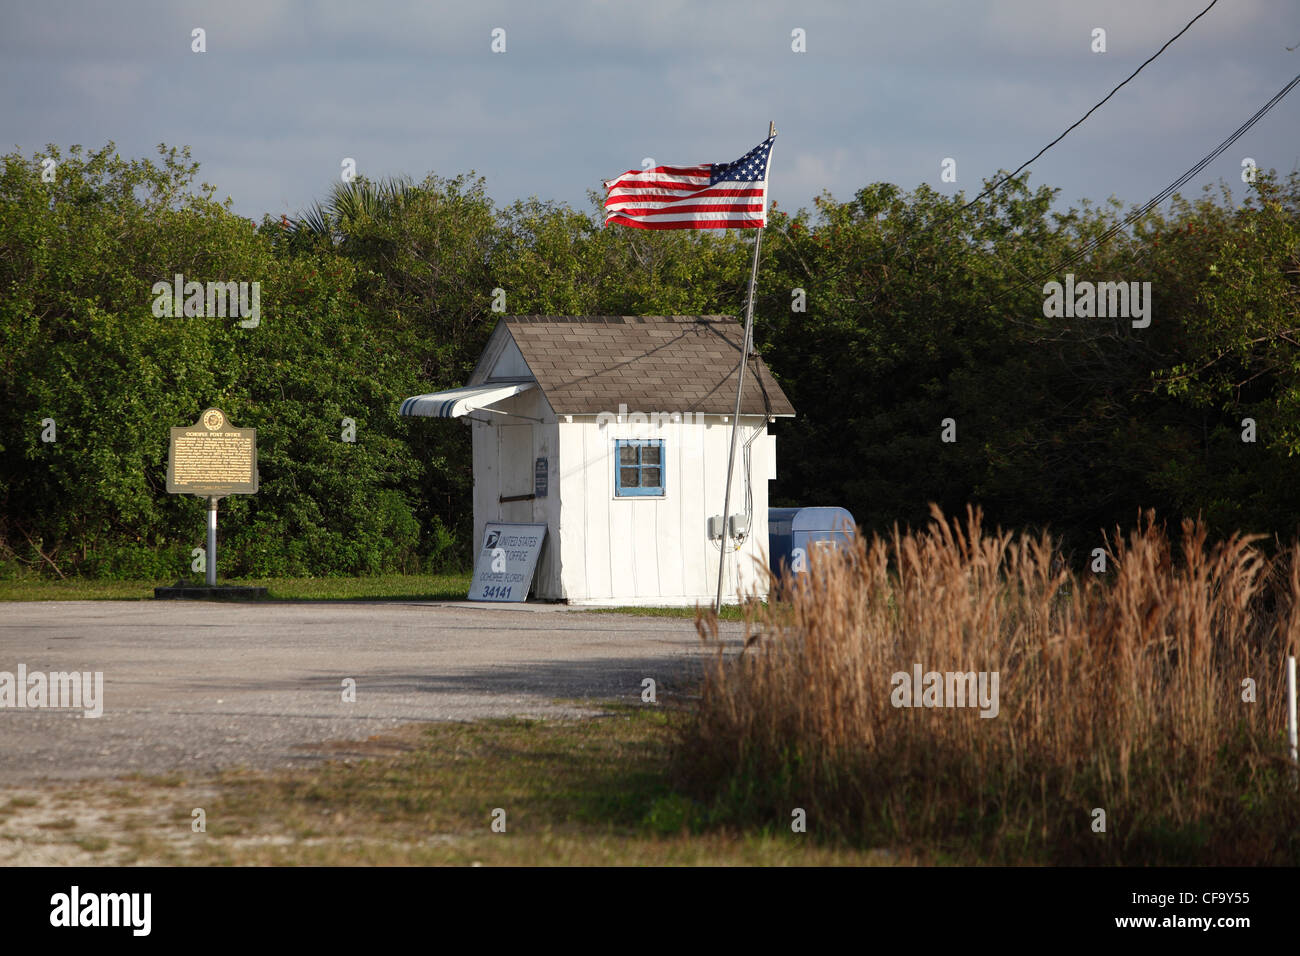 Ochopee Post Office, considered the smallest post office in the United States, Ochopee, Florida - Stock Image